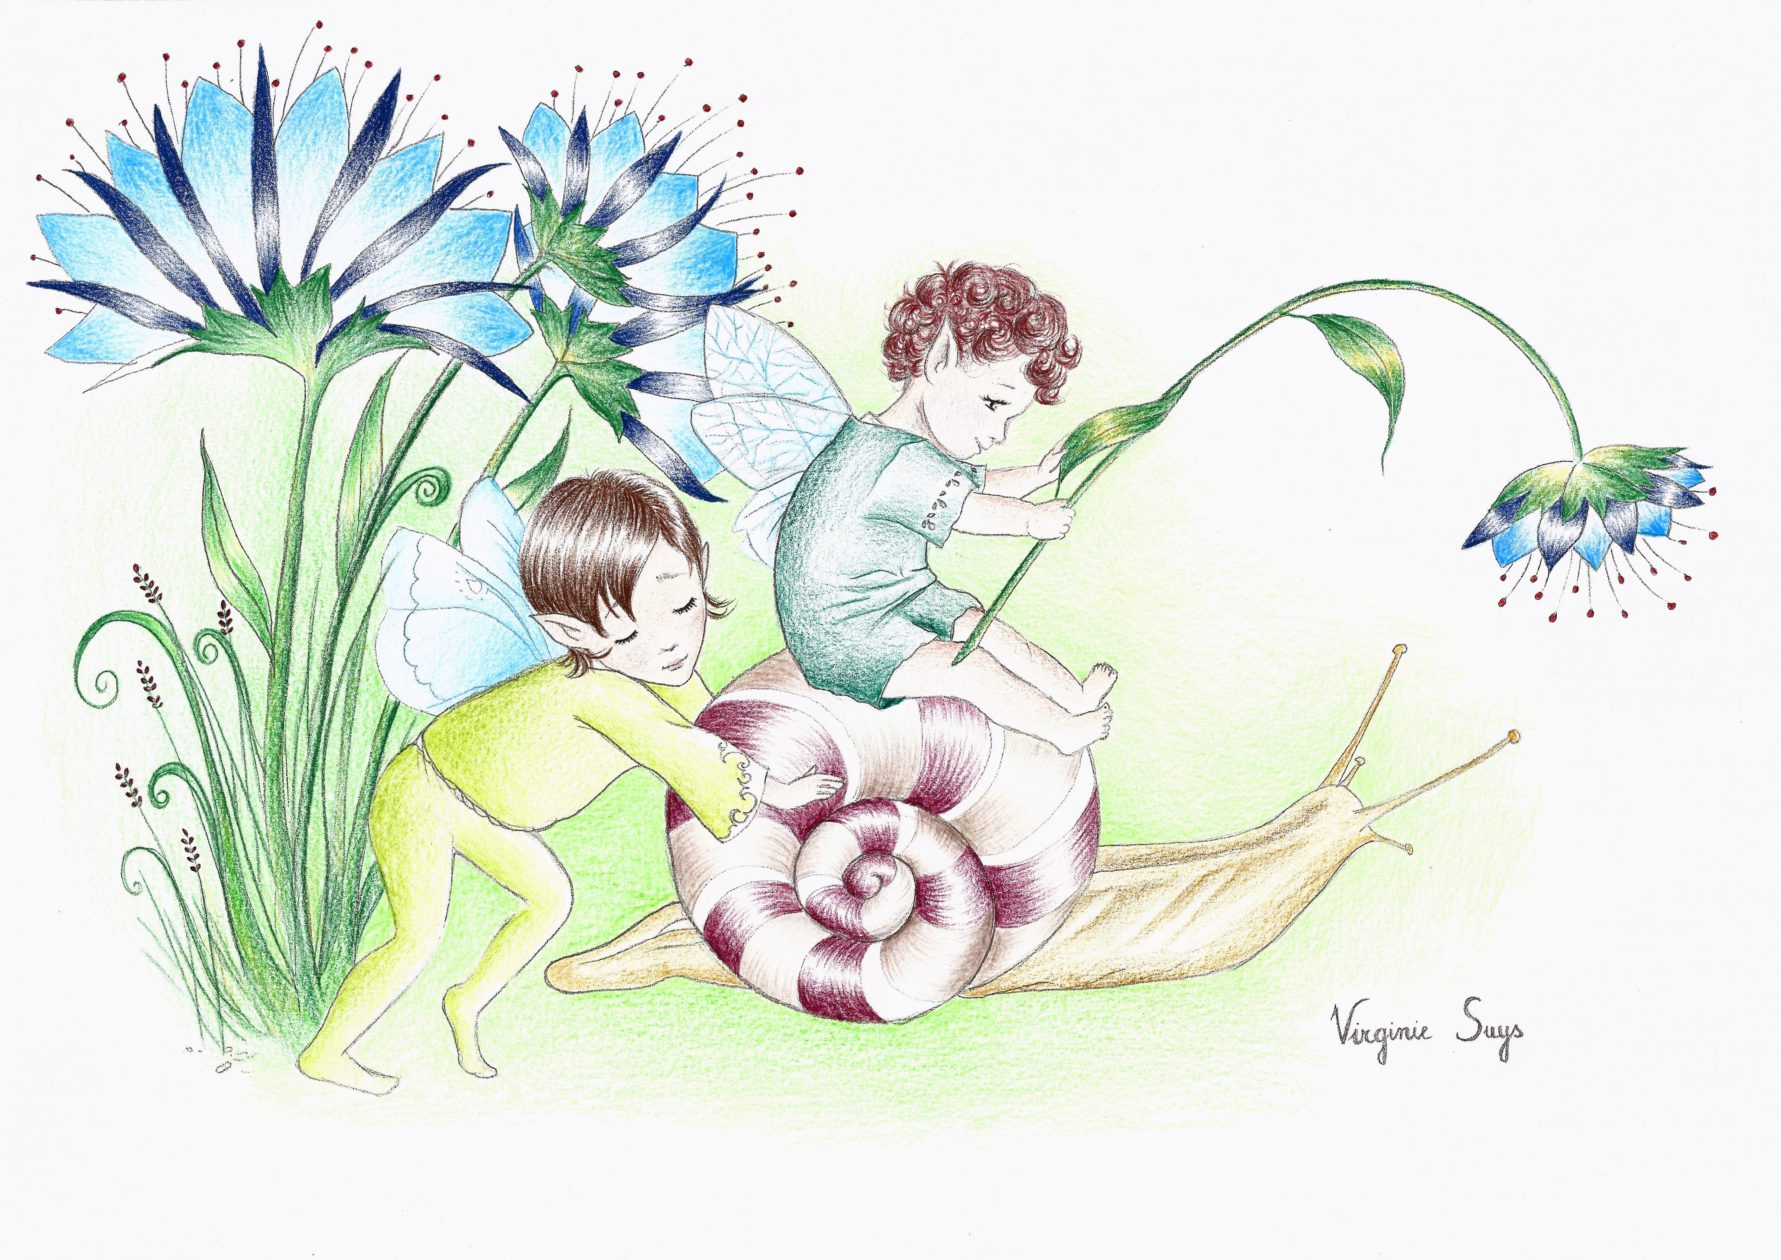 Snail and fairies with blue flowers